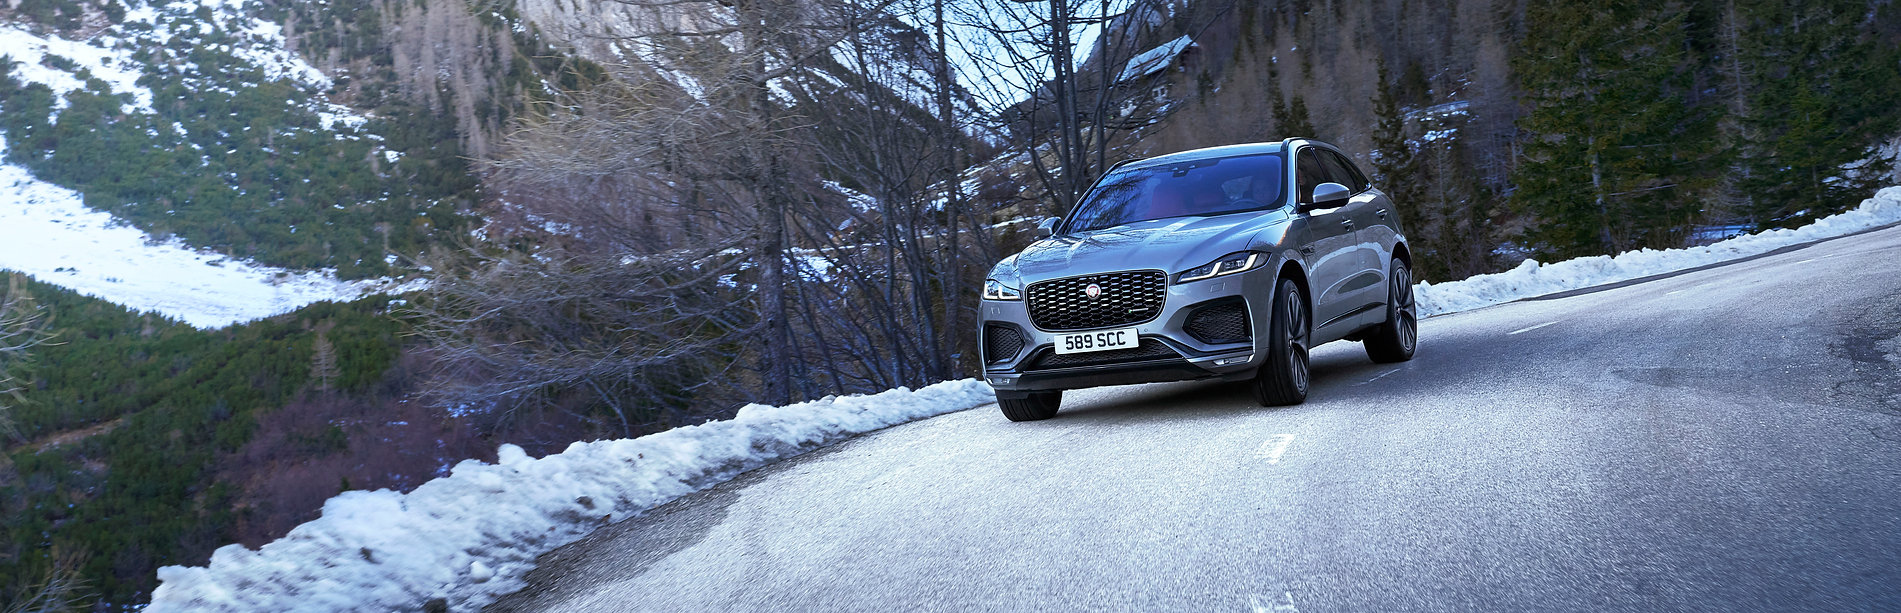 Jag_F-PACE_21MY_Location_Driving_150920_